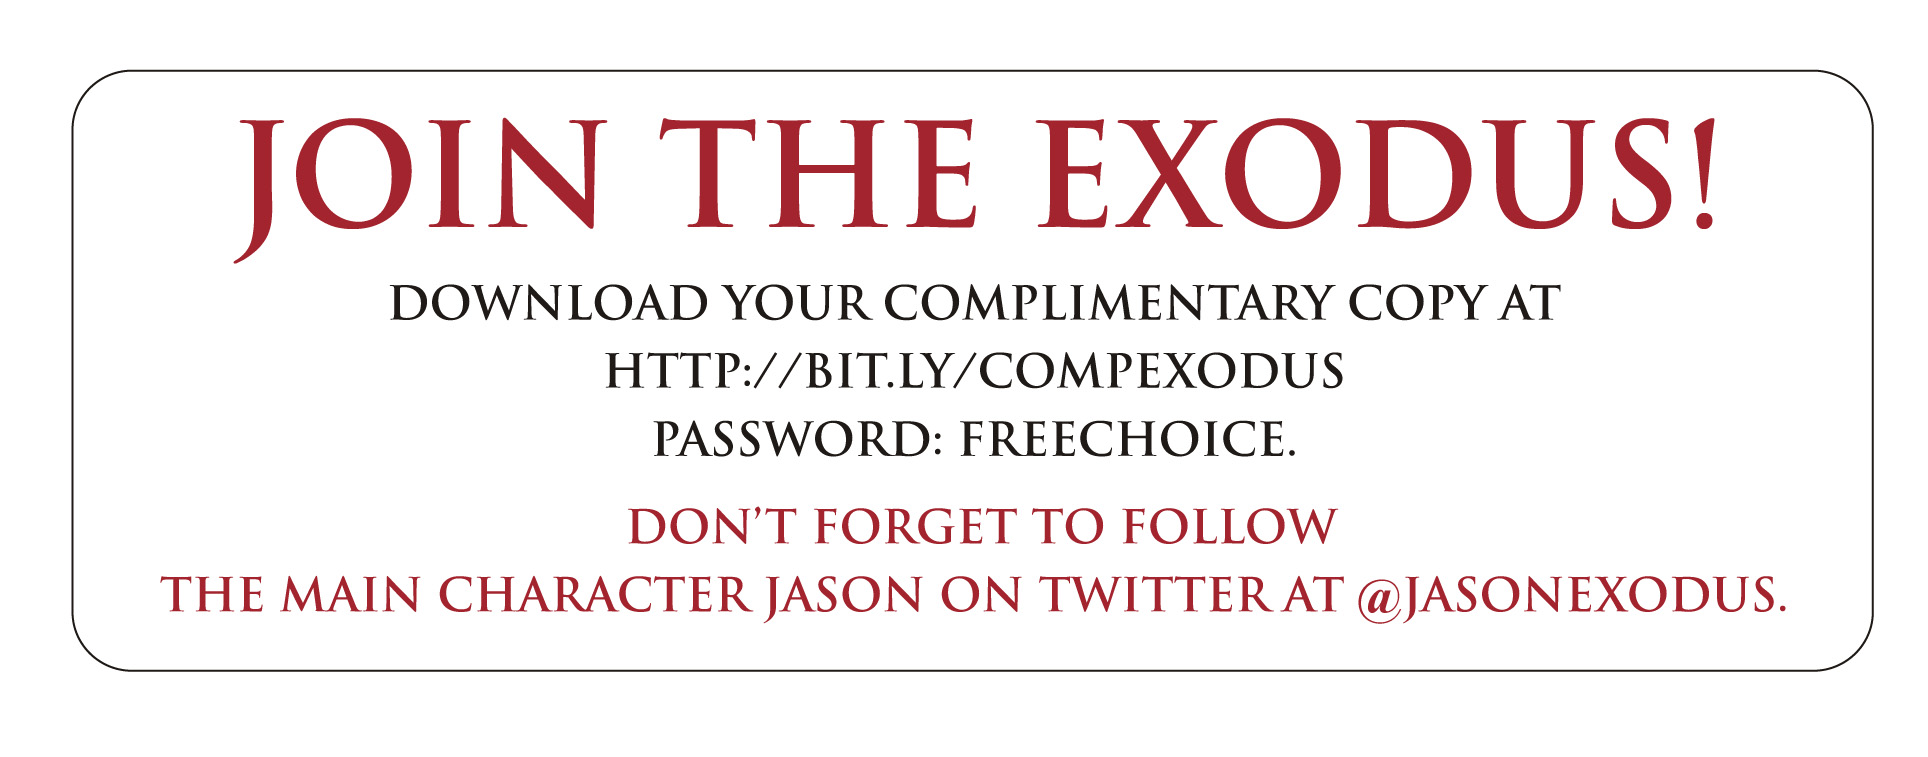 Join the Exodus!